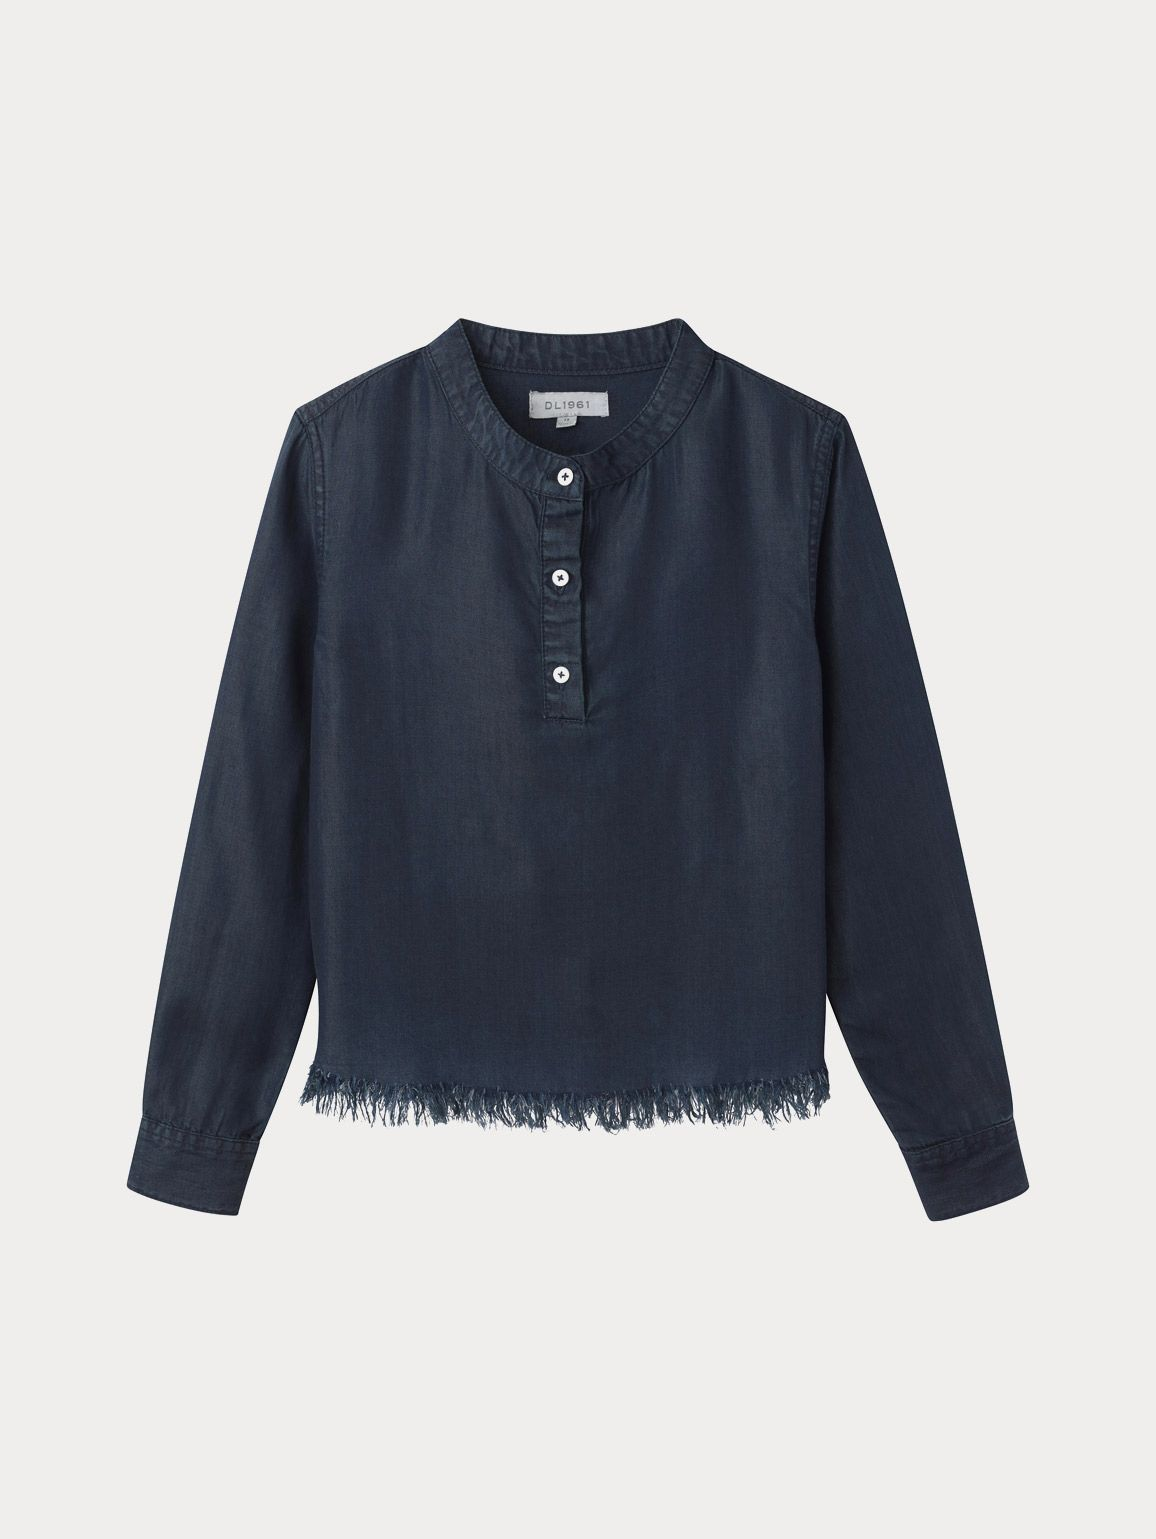 Marnie Long Sleeve Top | Washed Black Overdye